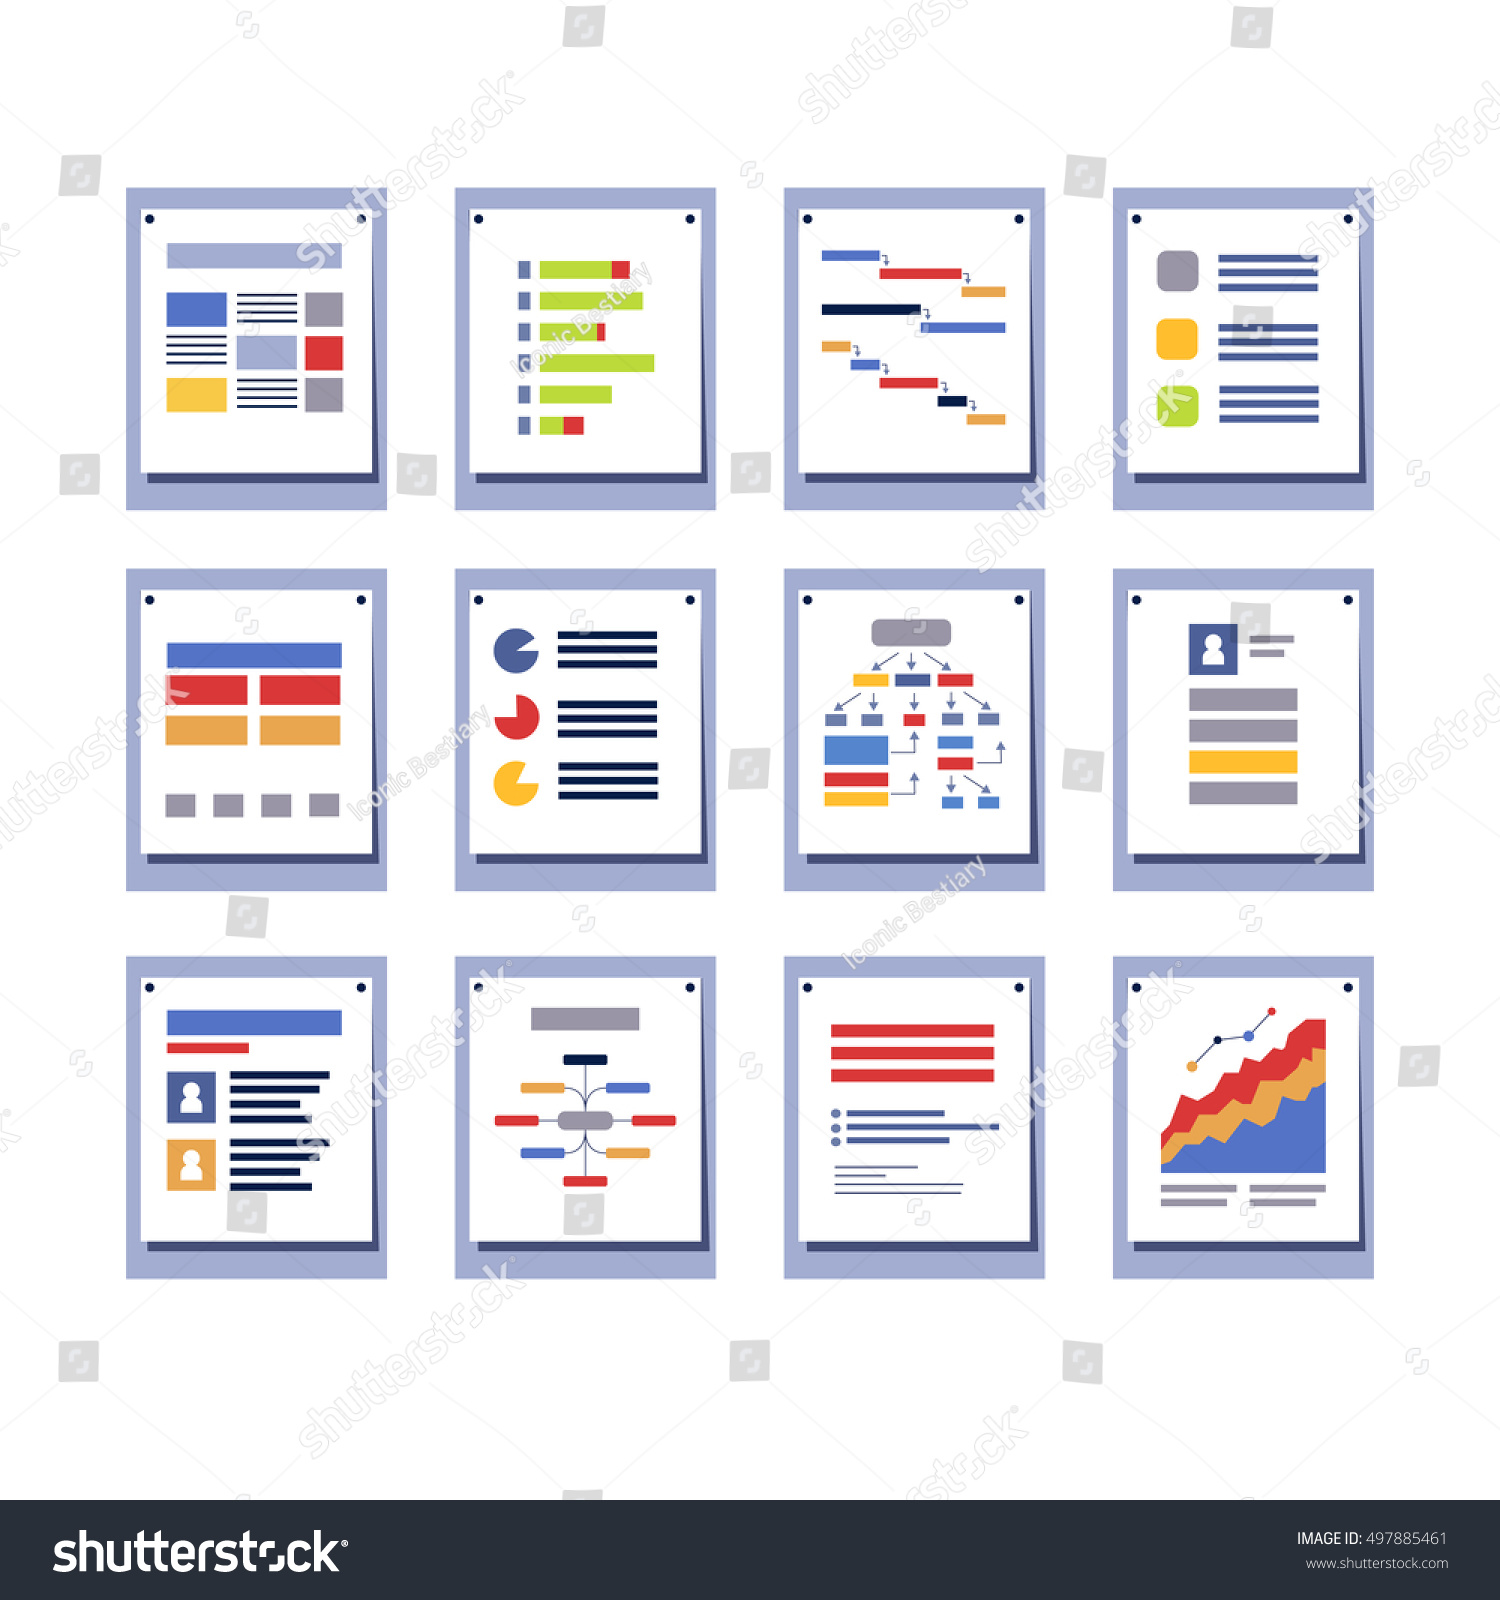 Drawing diagrams in pages - Set Of Elements For Infographic Design Diagrams Charts Pages And Graphs Sample